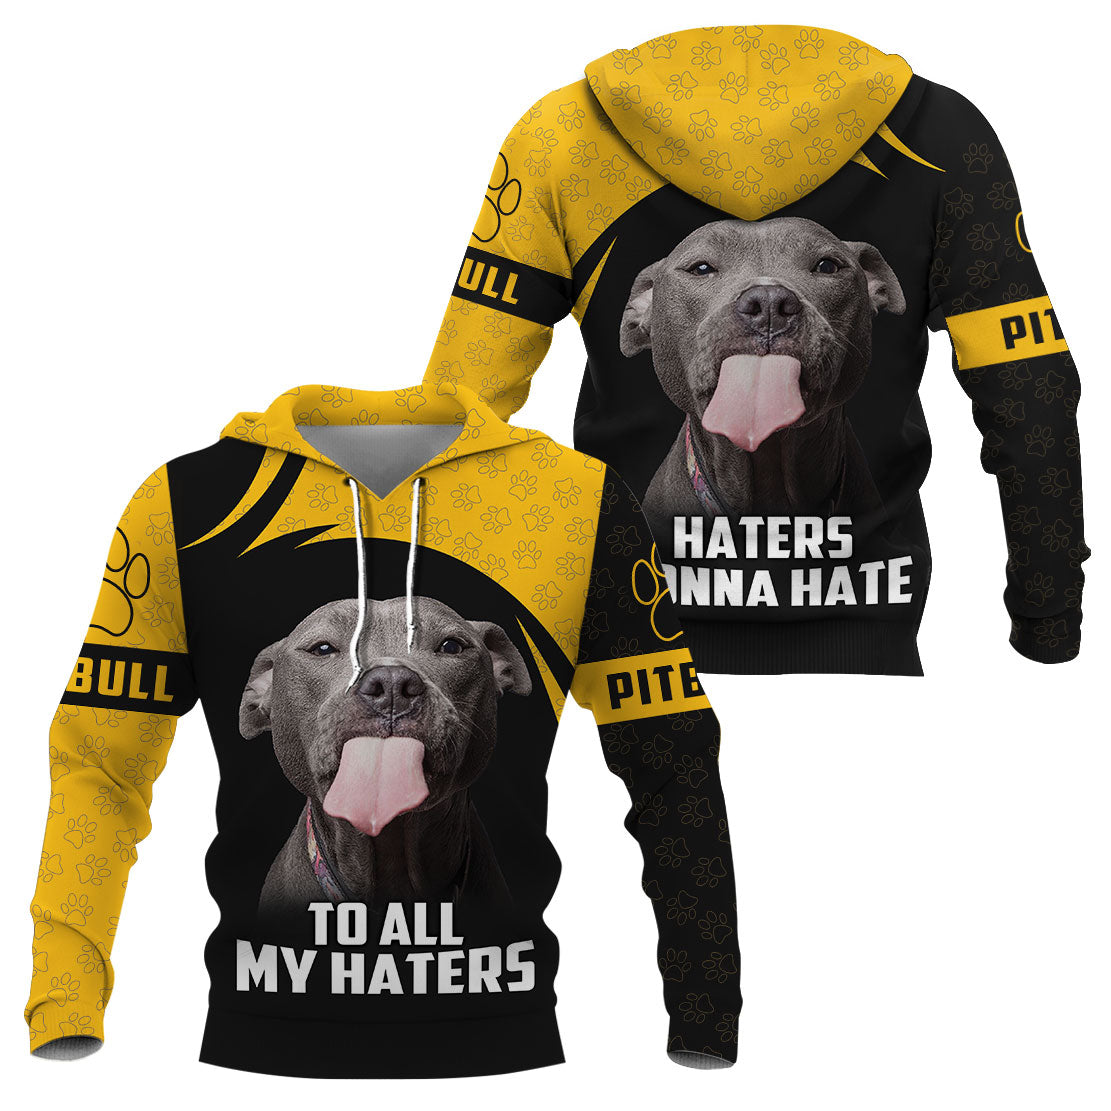 3D Apparel - To all my haters - Pitbull